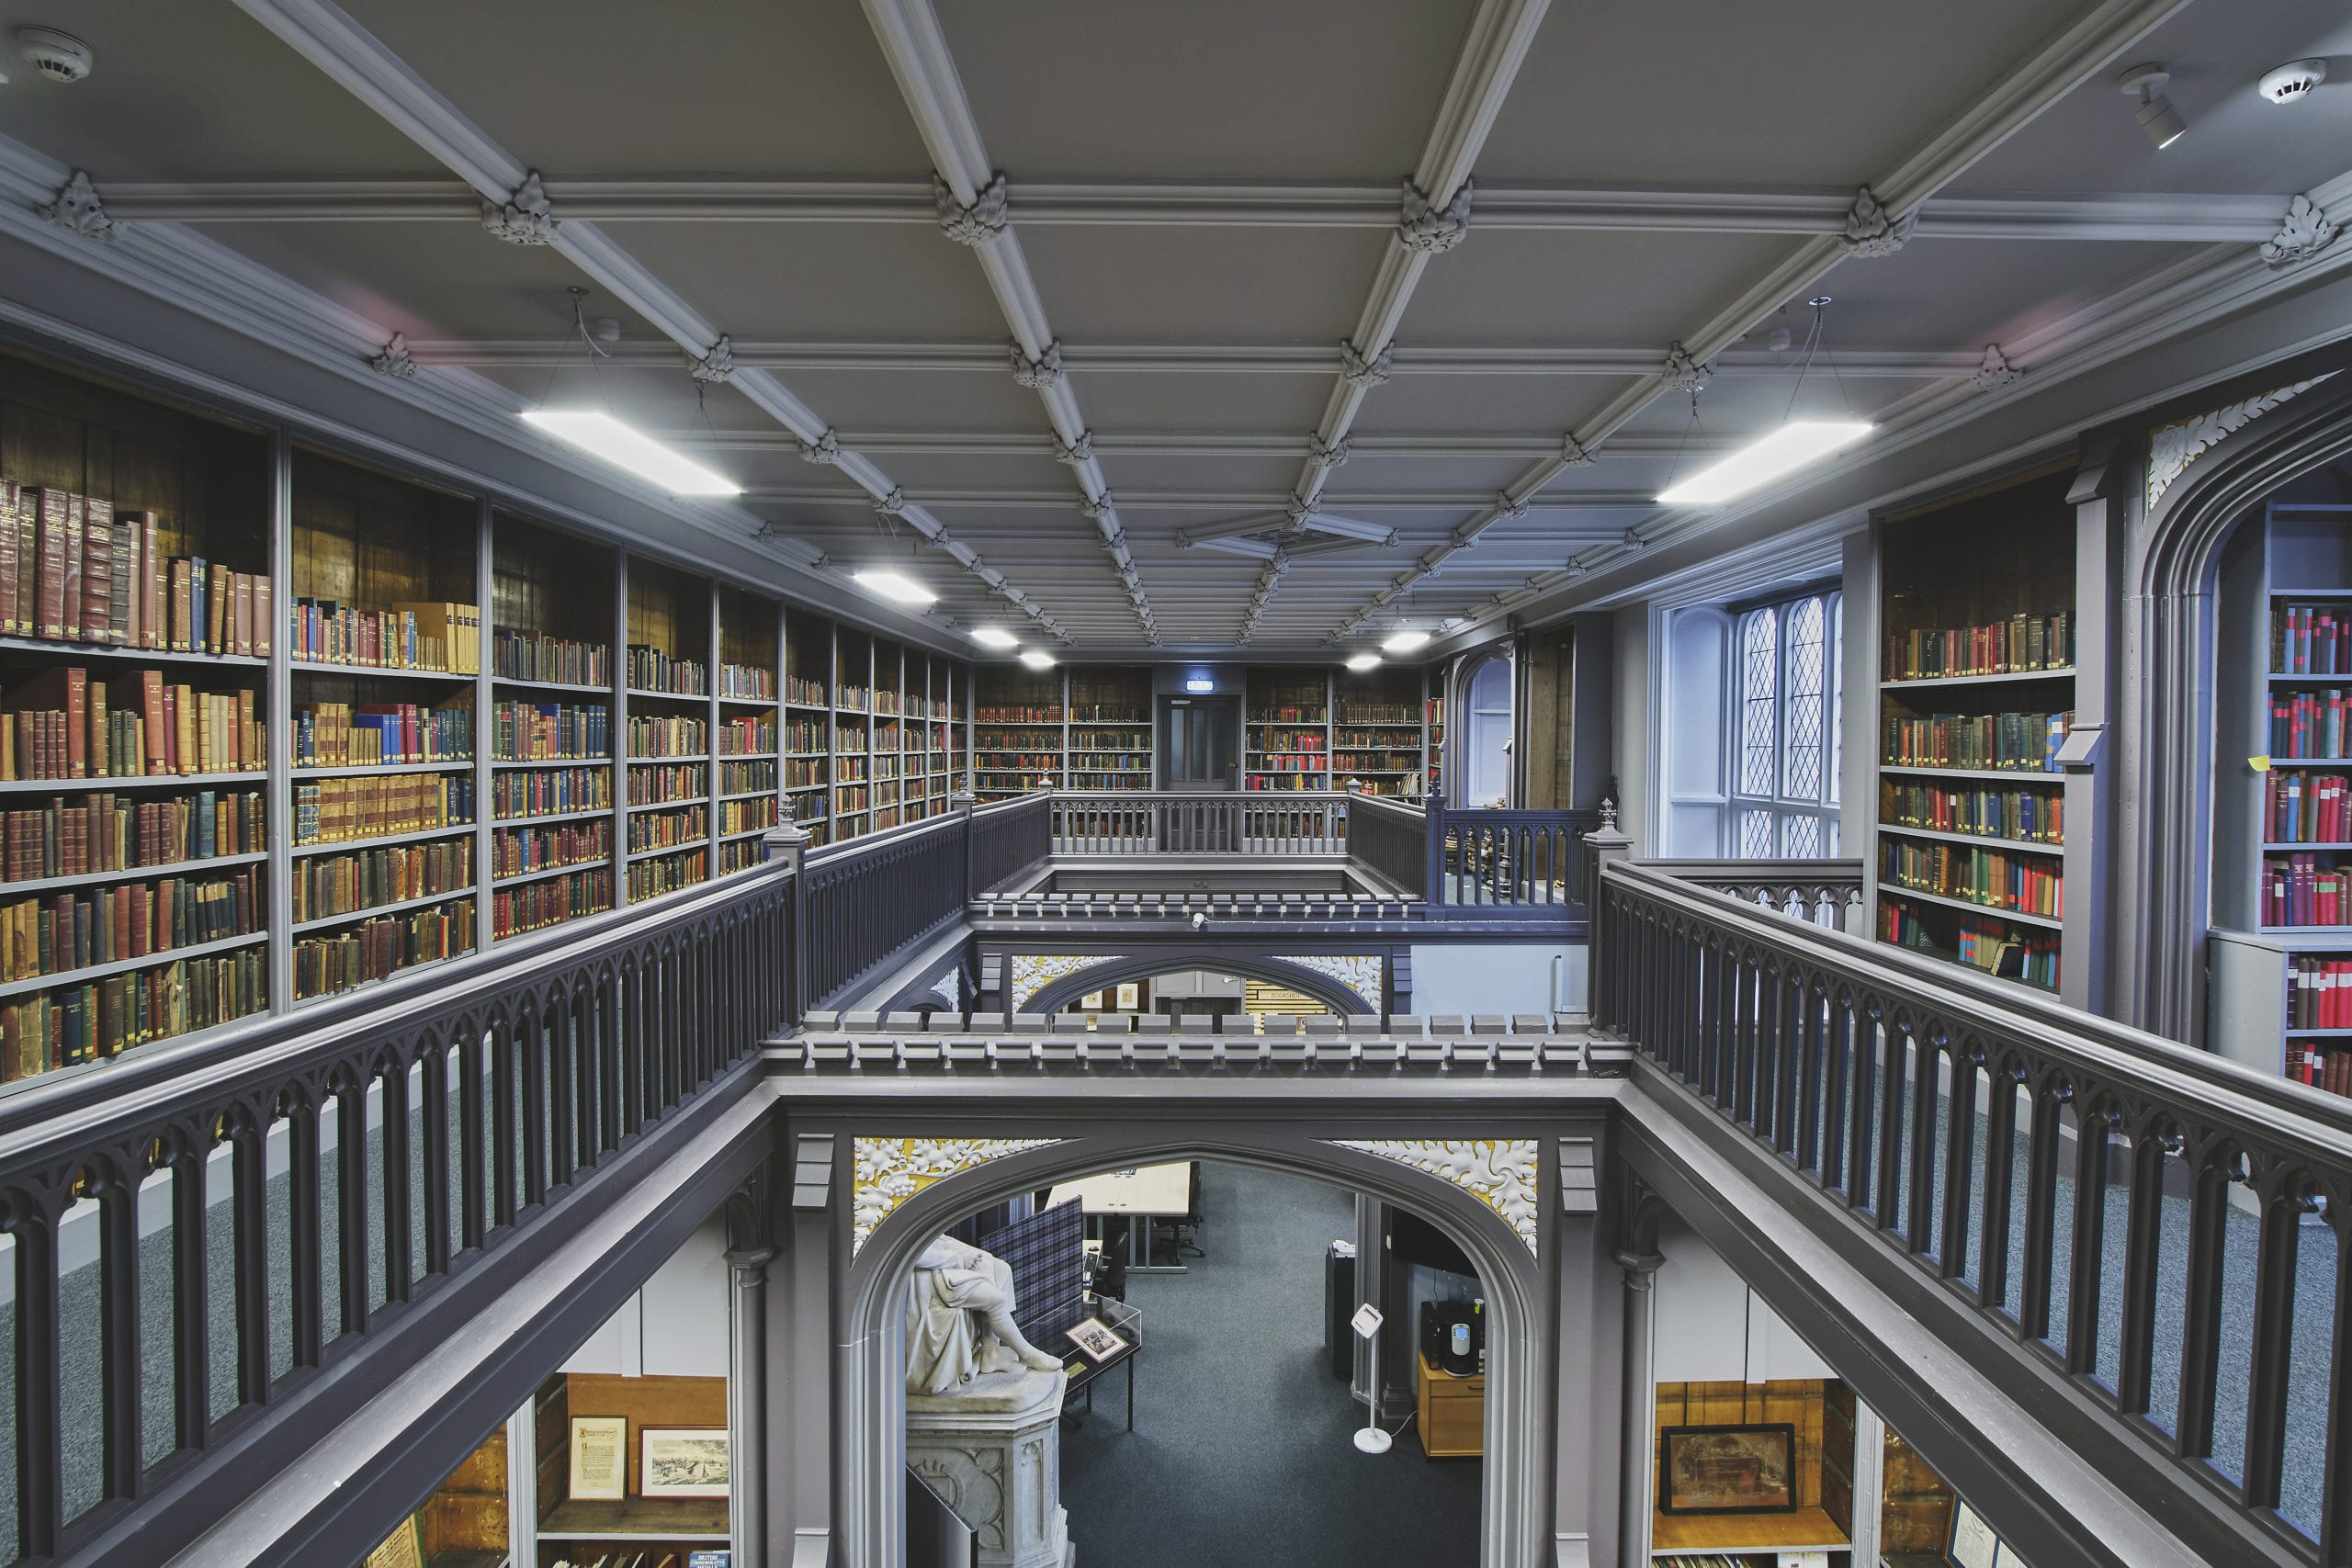 The Watt Library